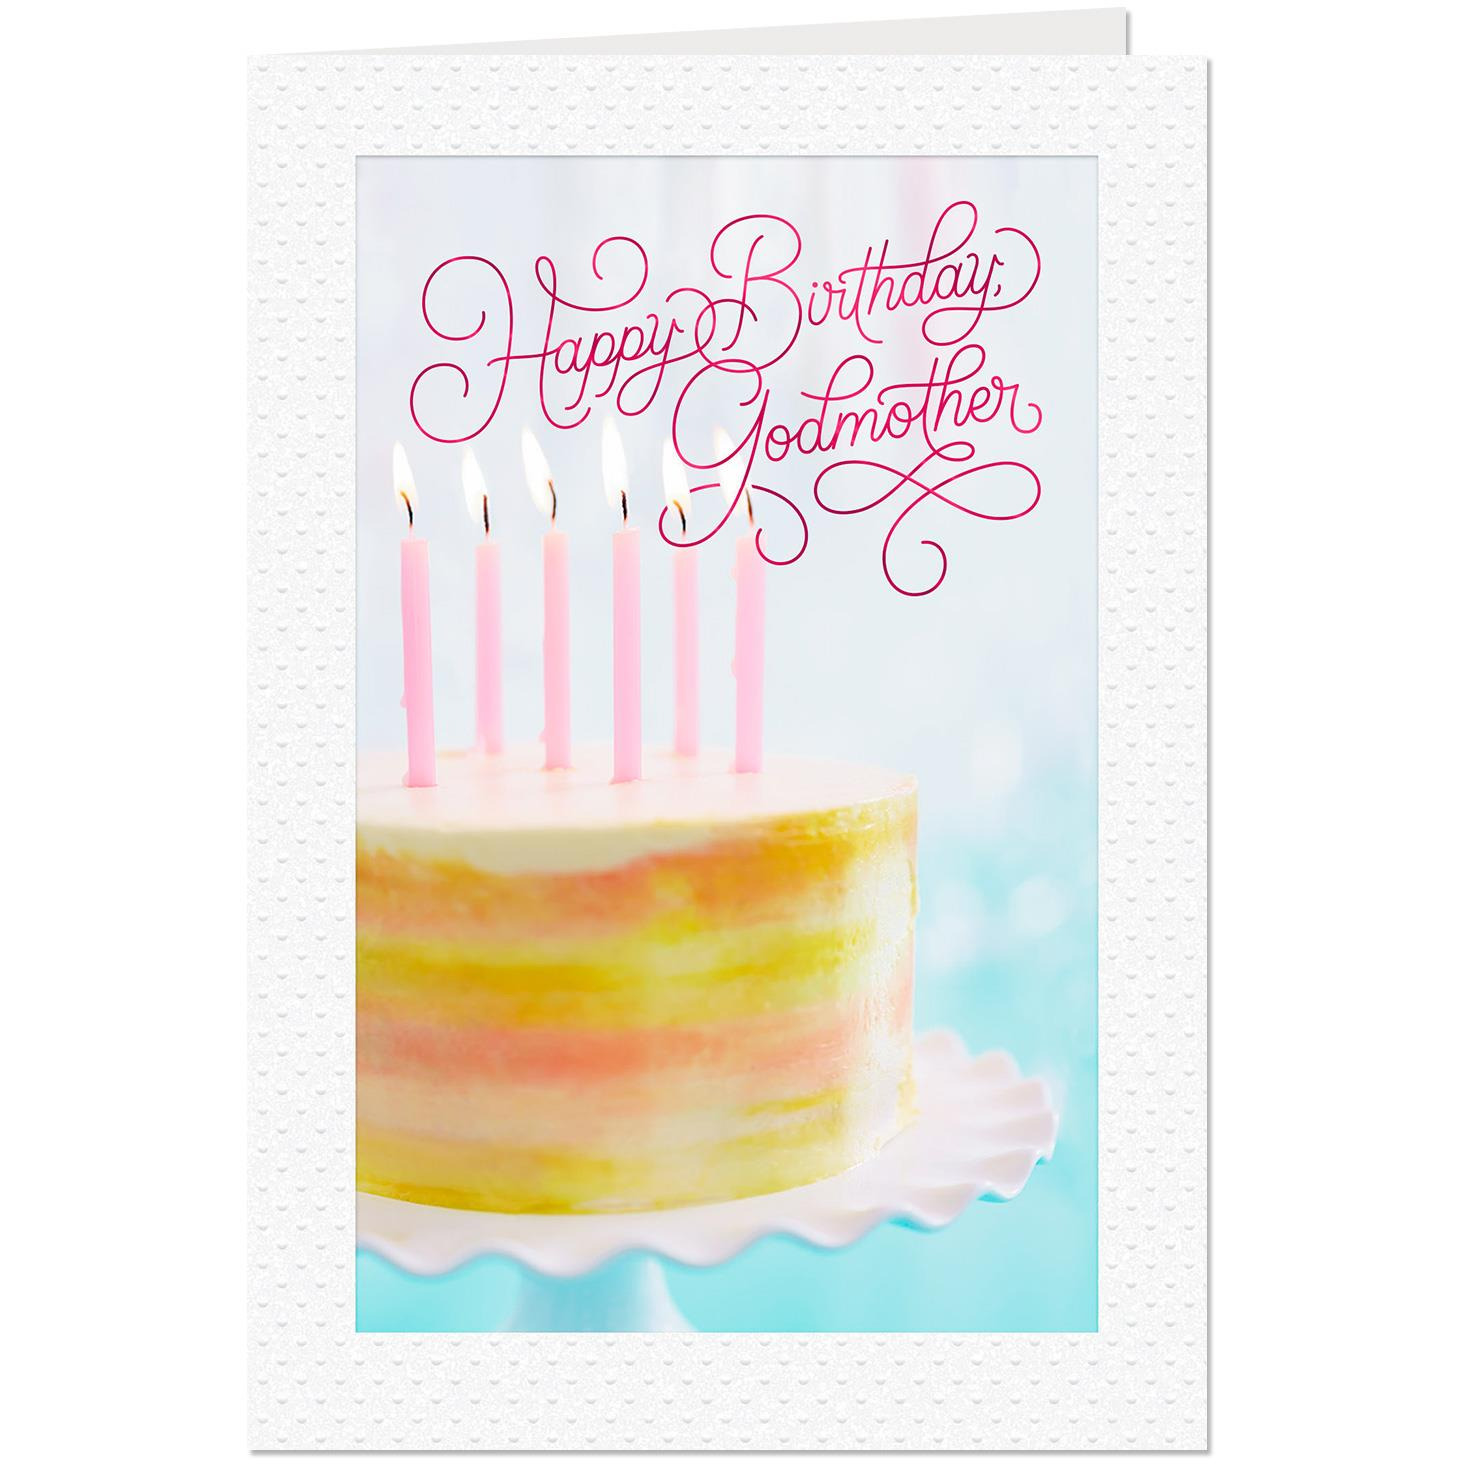 So Thankful For You Birthday Card For Godmother Greeting Cards